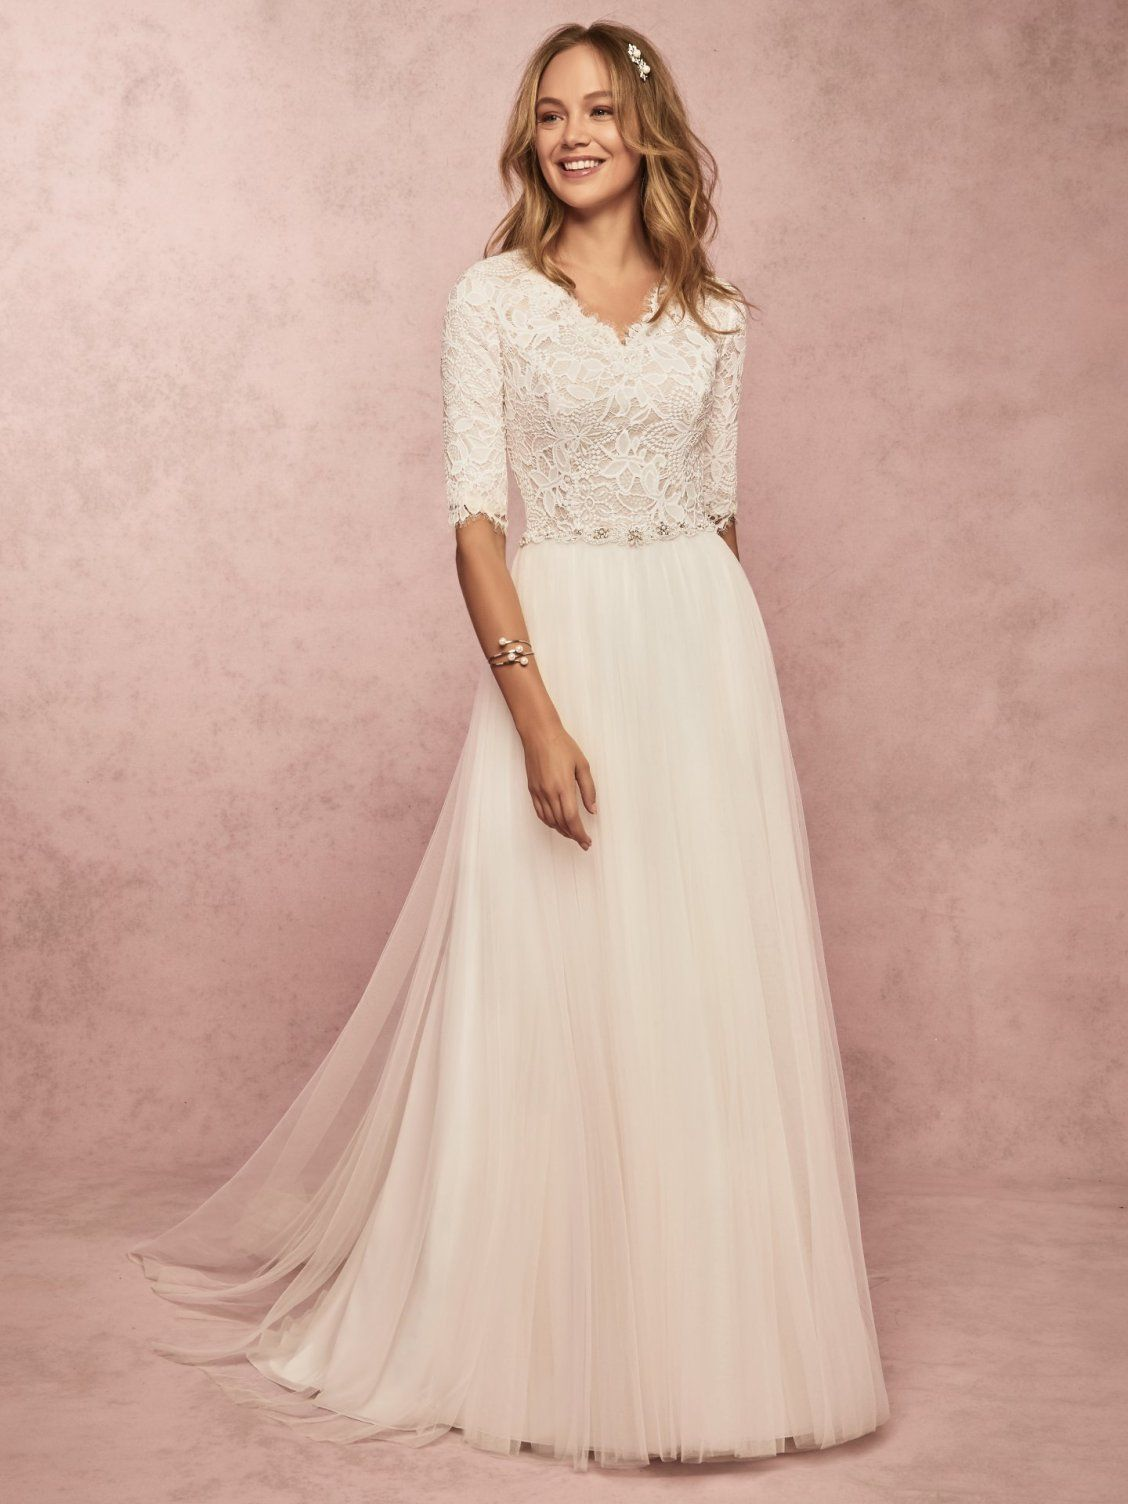 4931f165dc1 Rebecca Ingram - CONNIE LEIGH This soft and romantic modest wedding dress  features an allover lace bodice with three-quarter sleeves